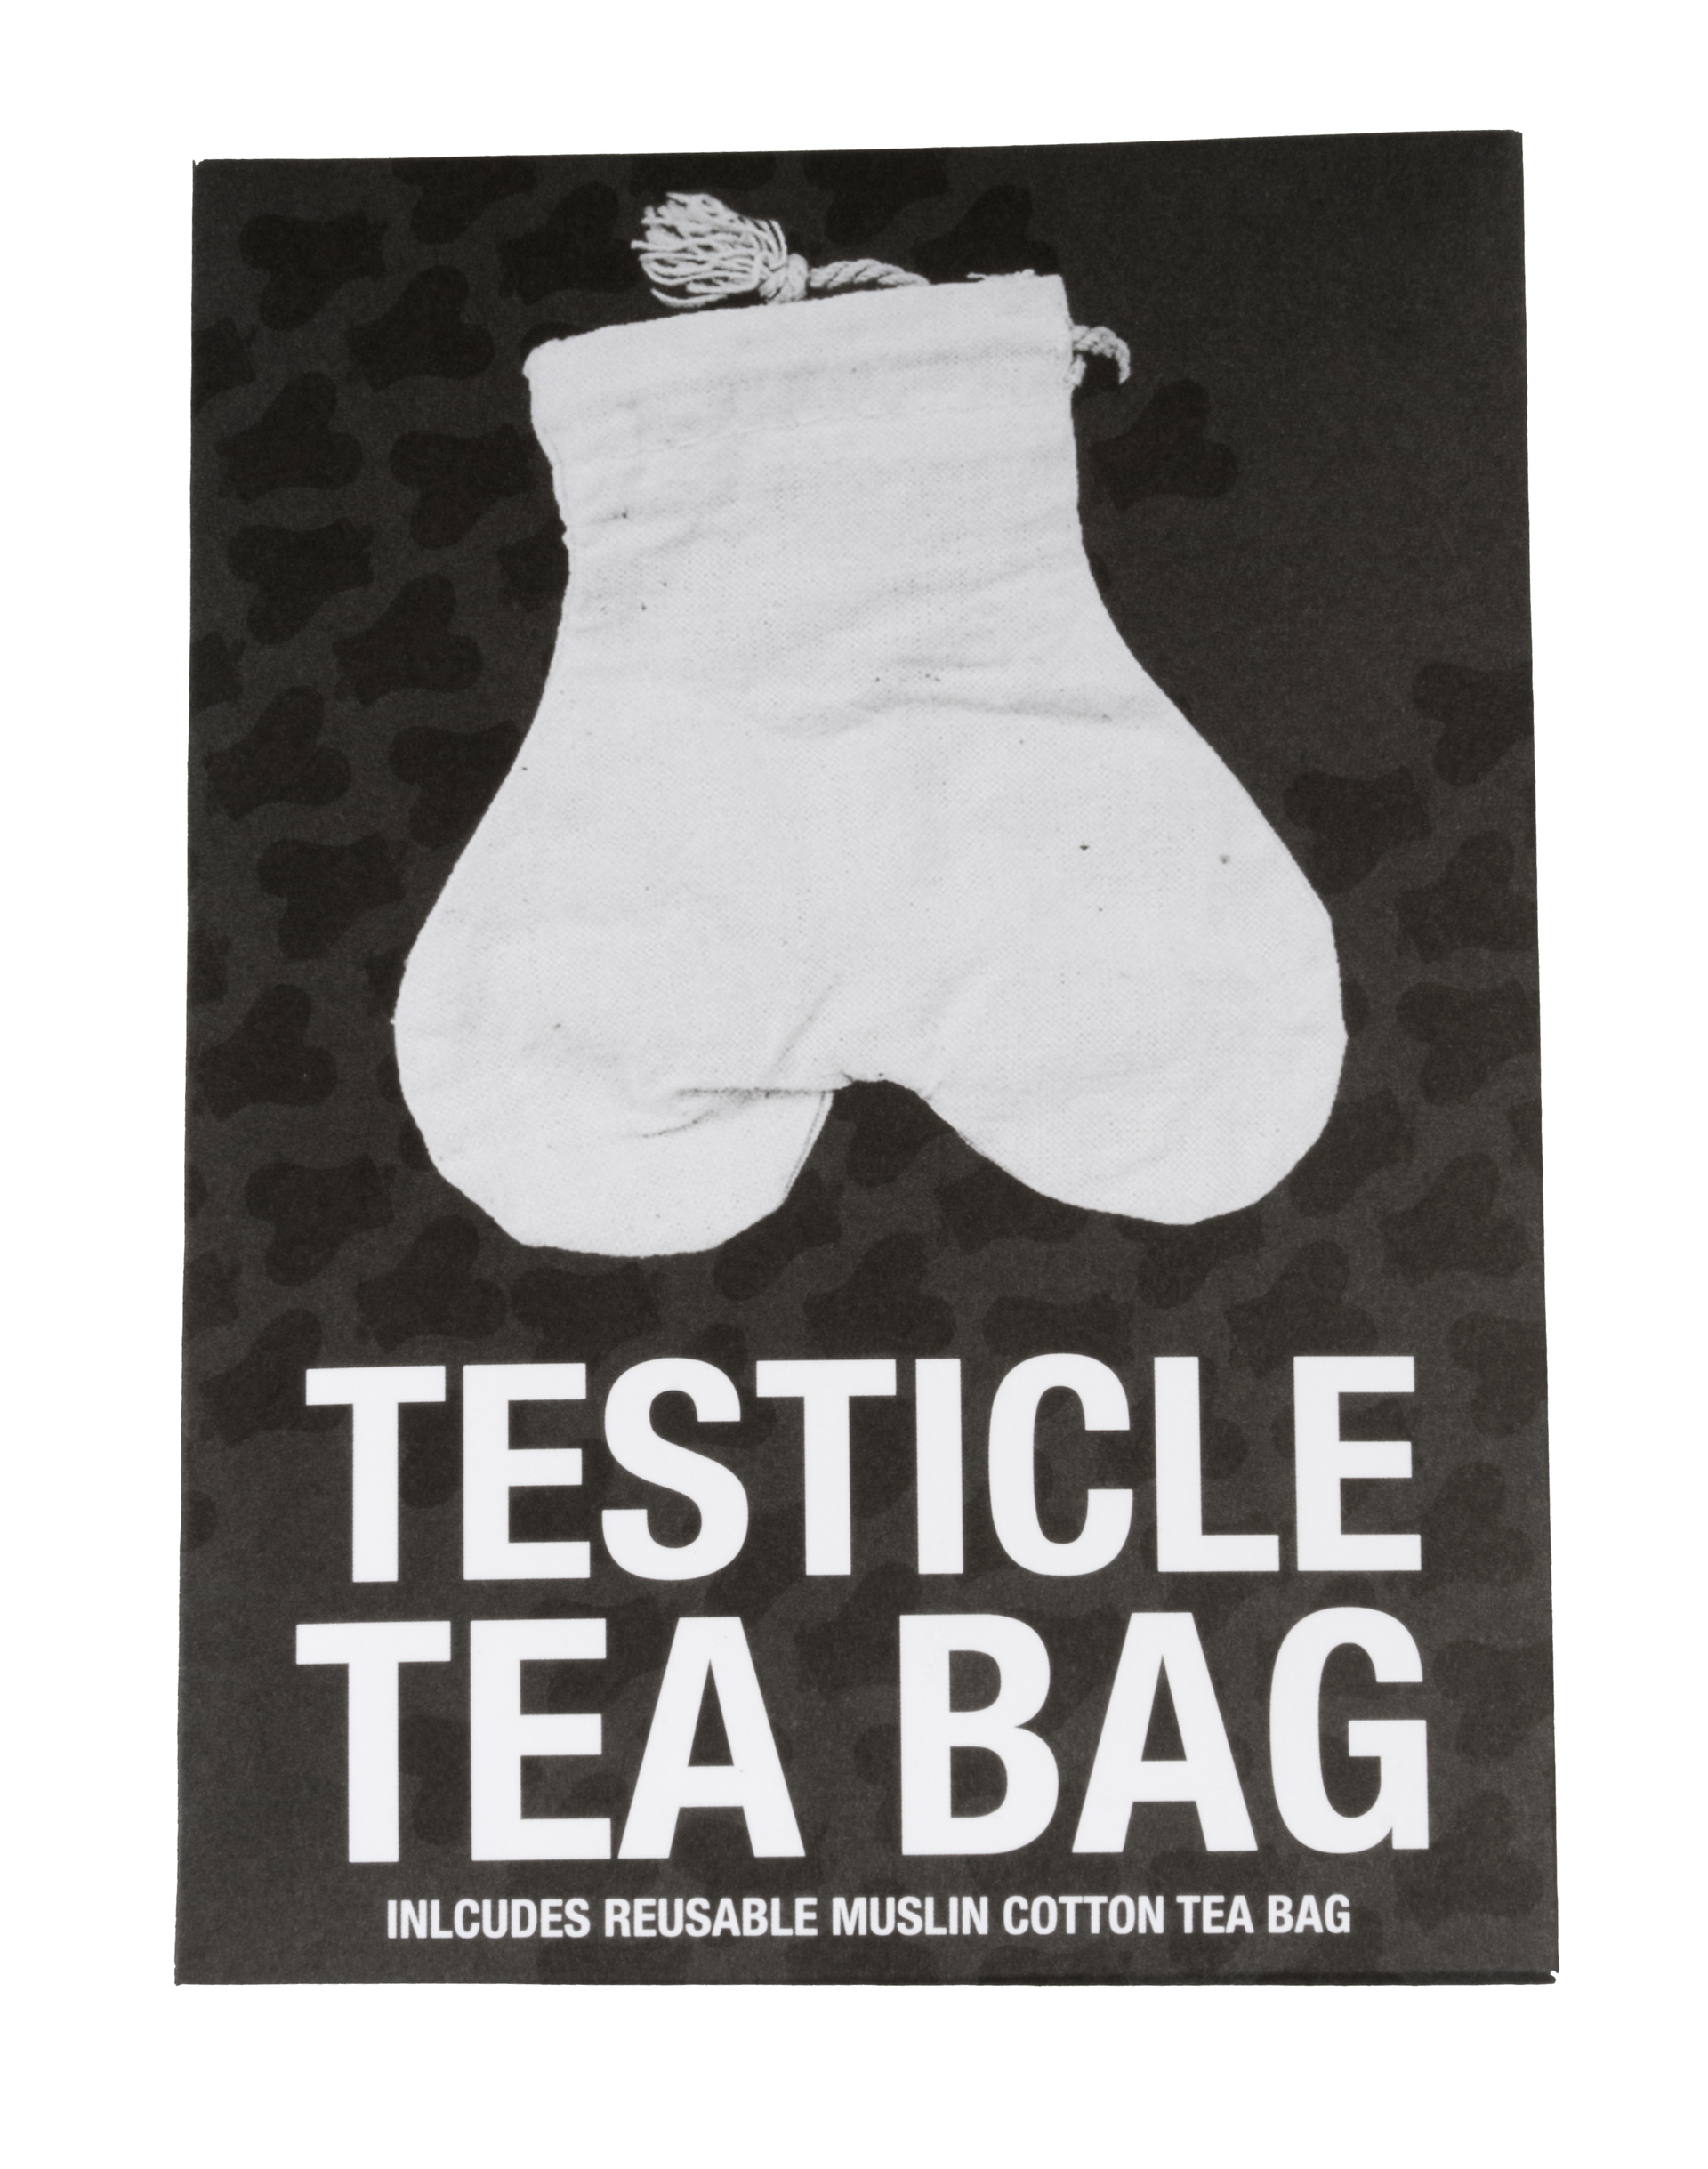 YOU'VE BEEN #TEABAGGED!